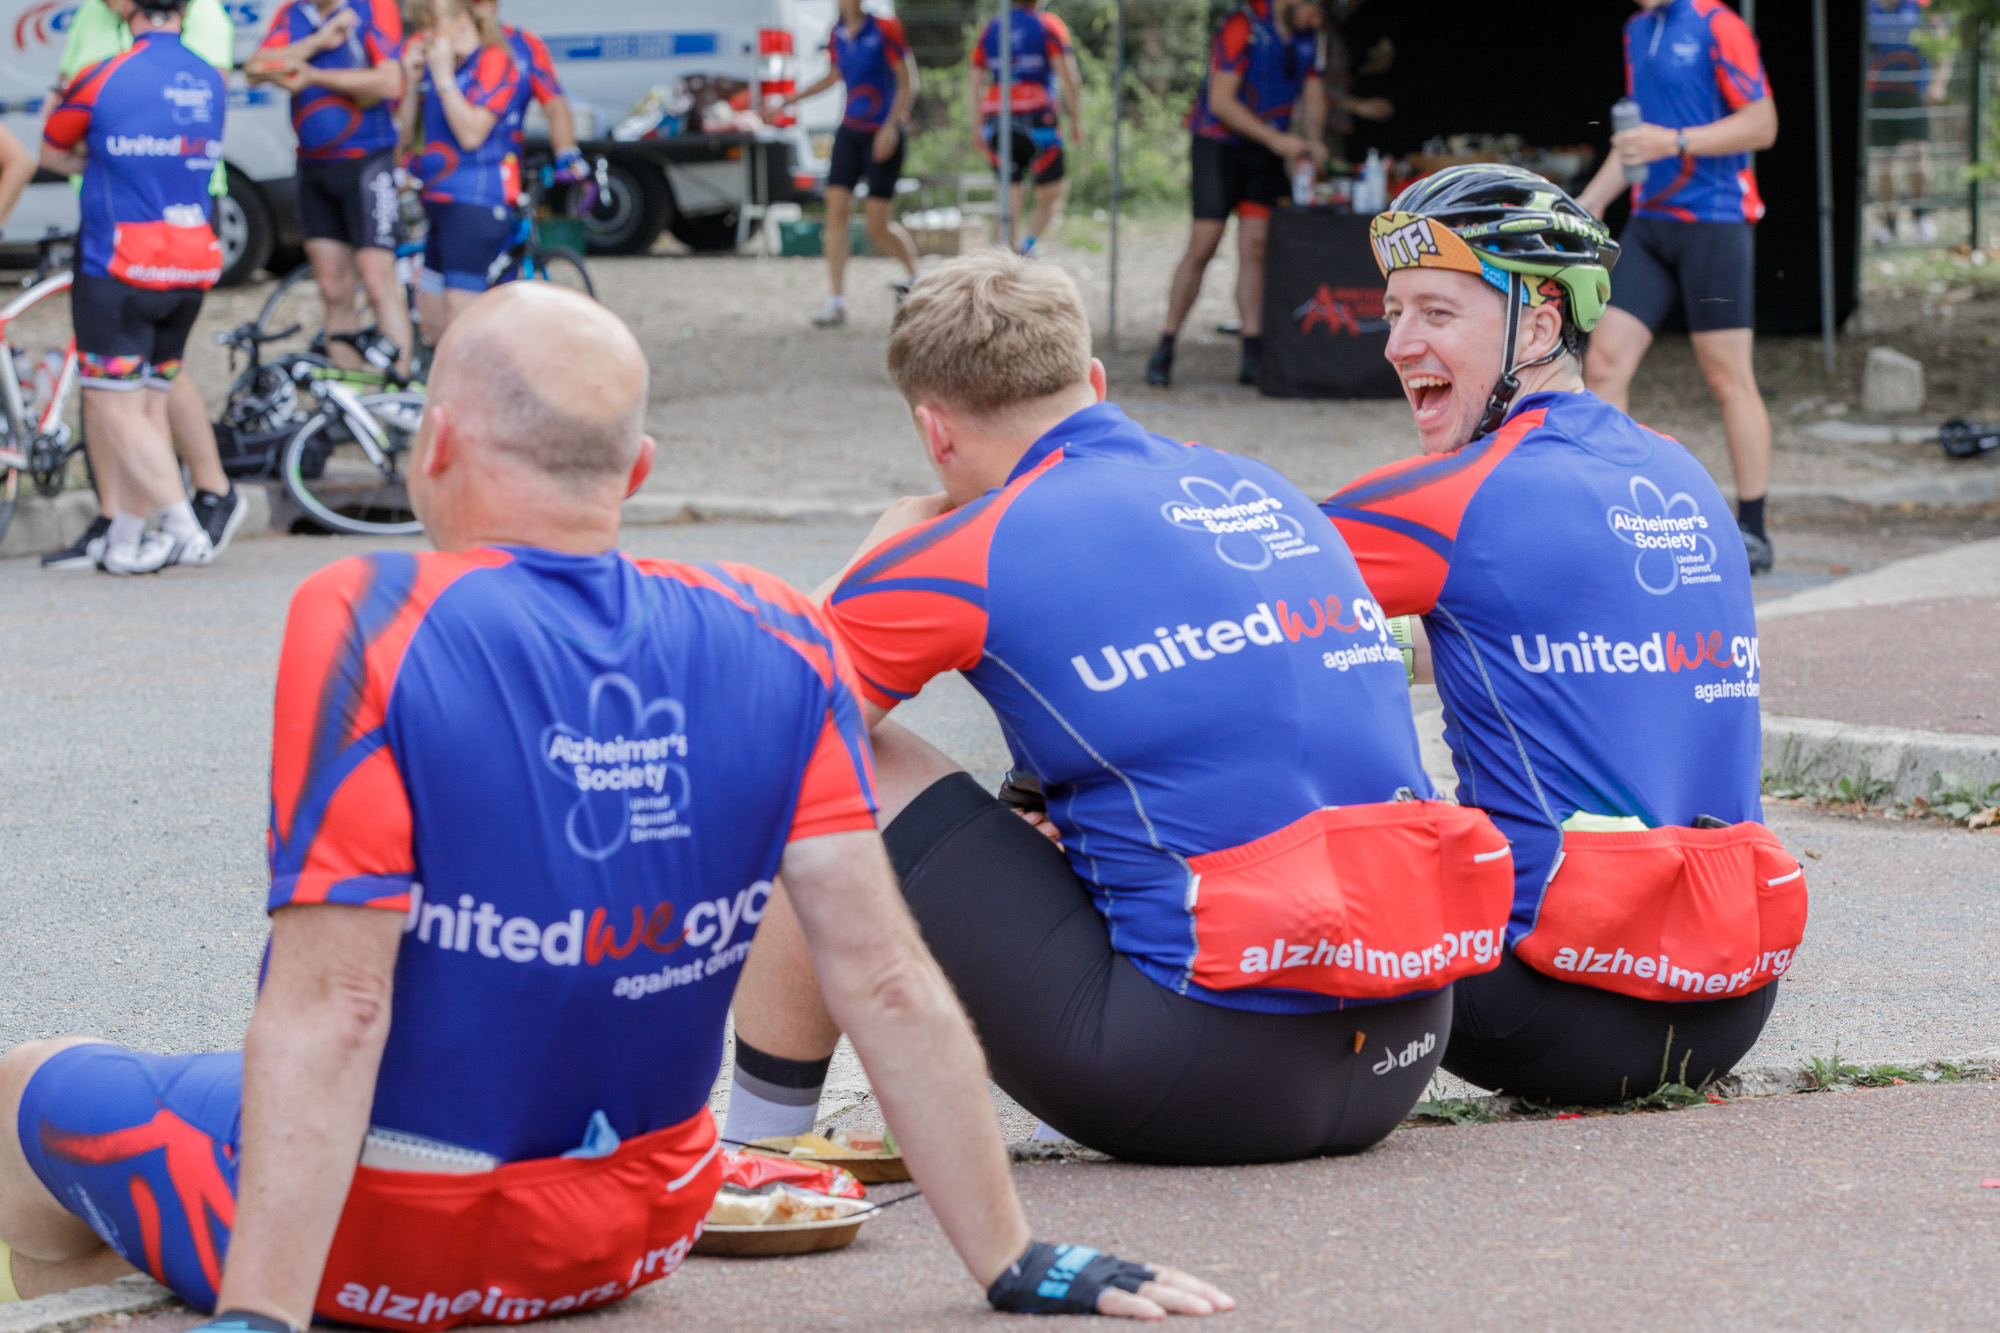 London to Paris Cycle Challenge 2018 - Laughter at lunch